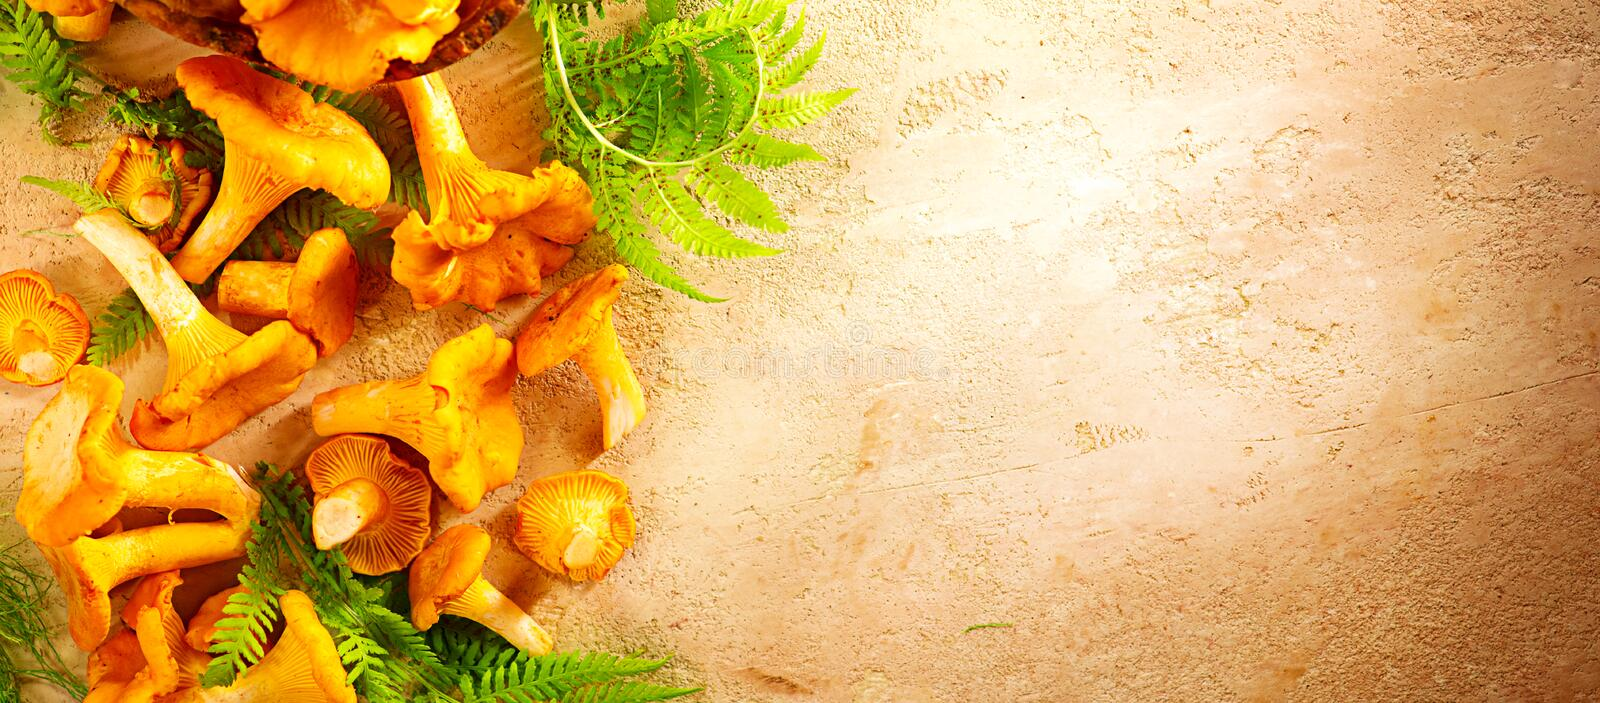 Raw wild chanterelle mushrooms on old rustic table background. Organic fresh chanterelles background stock images